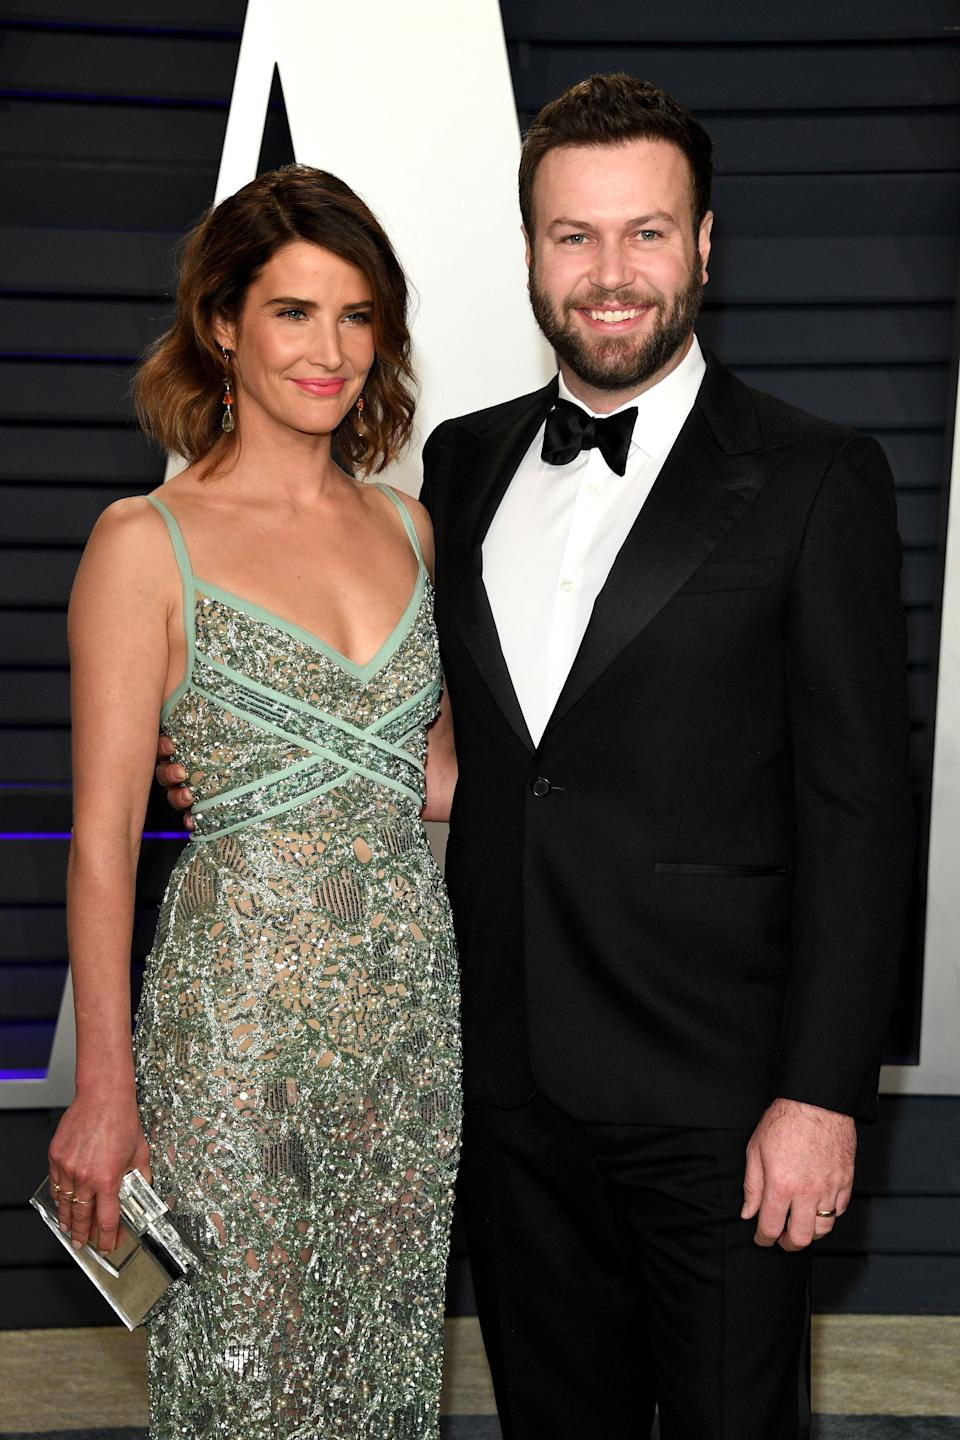 "Wait, how did ""How I Met Your Mother"" star <a href=""https://www.huffingtonpost.com/entry/cobie-smulders-how-i-met-your-mother-avengers_us_5bd36074e4b0d38b58833386"">Cobie Smulders</a> meet (and marry) ""Saturday Night Live"" alum <a href=""https://www.huffpost.com/news/topic/taran-killam"" target=""_blank"" rel=""noopener noreferrer"">Taran Killam</a> without us realizing it? <br /><br><br><br />Apparently, their love story began with jazz and a good game of pool over 14 years ago. <br /><br><br><br />""Early in our relationship, we went to Fat Cat in New York … and we played pool and then listened to jazz and fell in love,"" <a href=""https://www.usmagazine.com/celebrity-news/news/taran-killam-how-i-fell-in-love-with-wife-cobie-smulders/"" target=""_blank"" rel=""noopener noreferrer"">Killam told Us Weekly</a> in February. <br /><br><br><br />The pair, who've have been married for six years, are parents to two daughters."